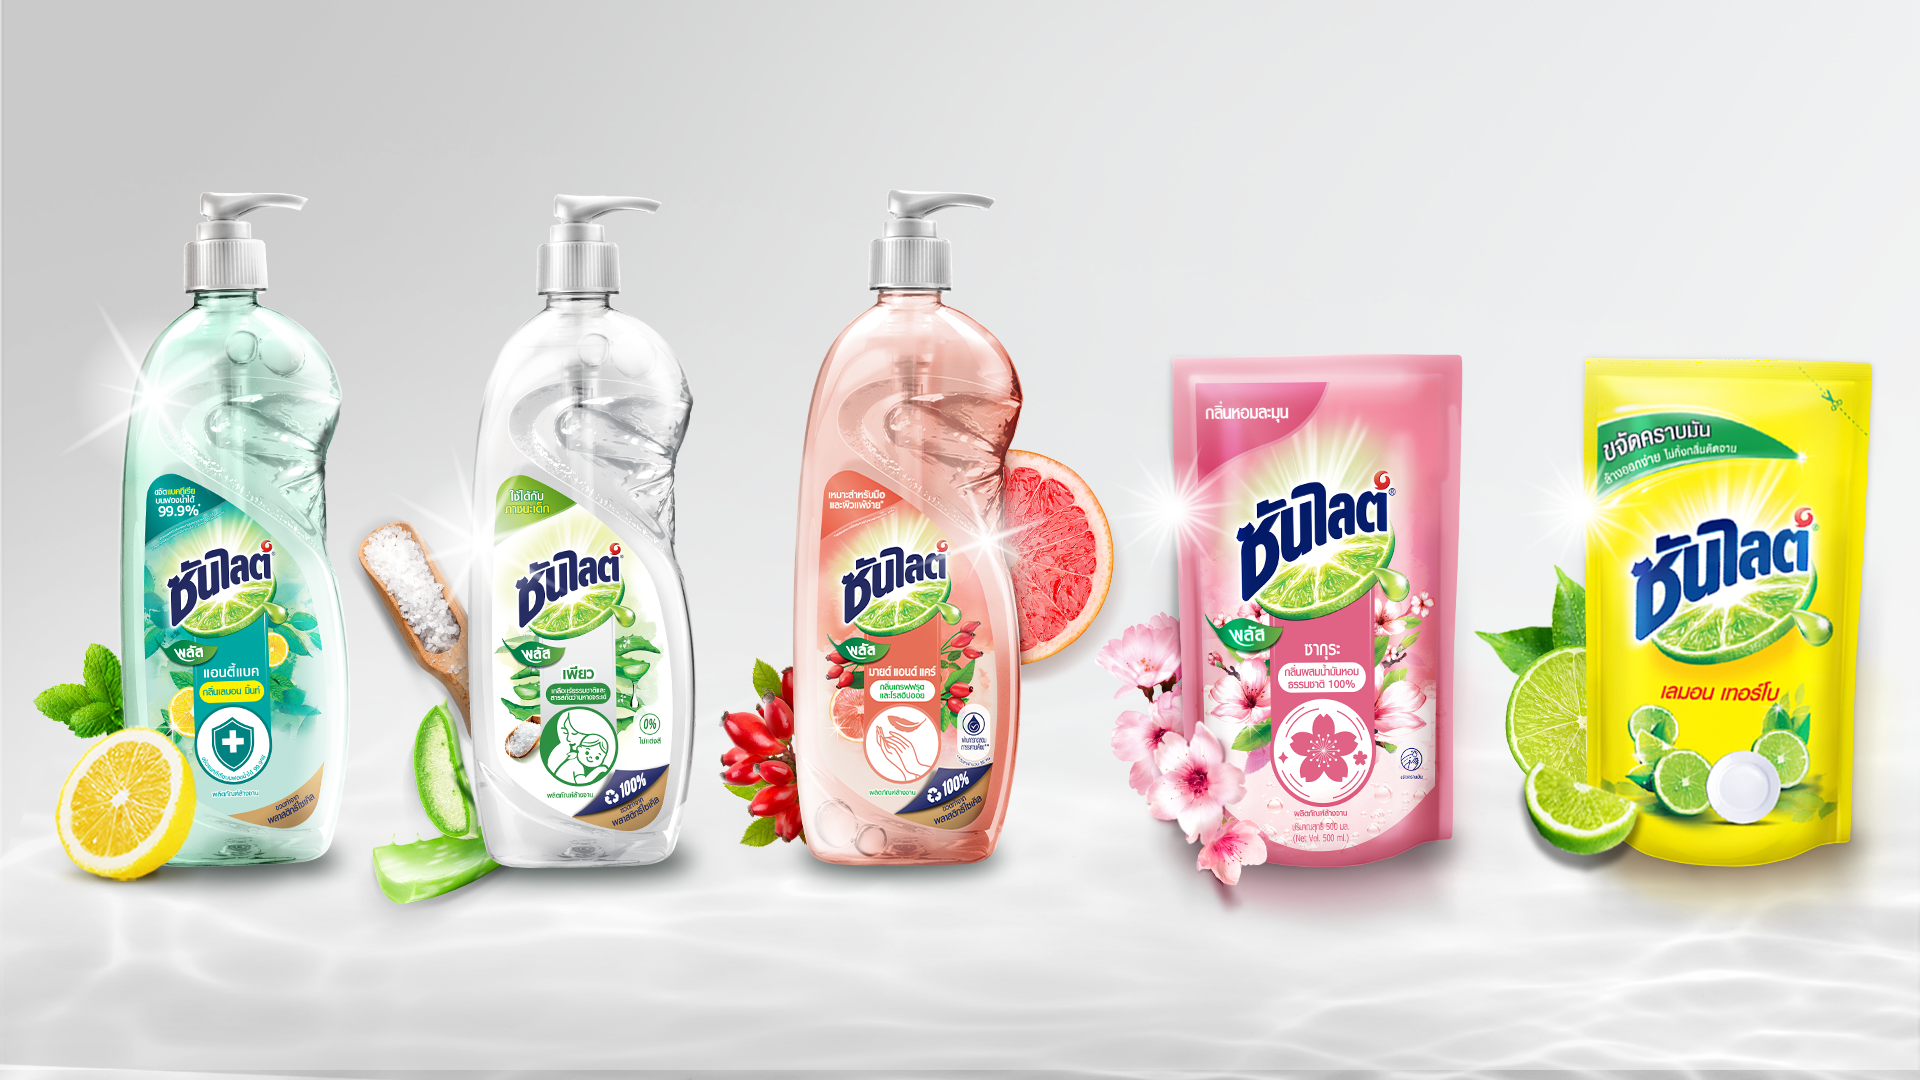 Sunlight dishwash variants in pouches and pump bottles with ingredients.